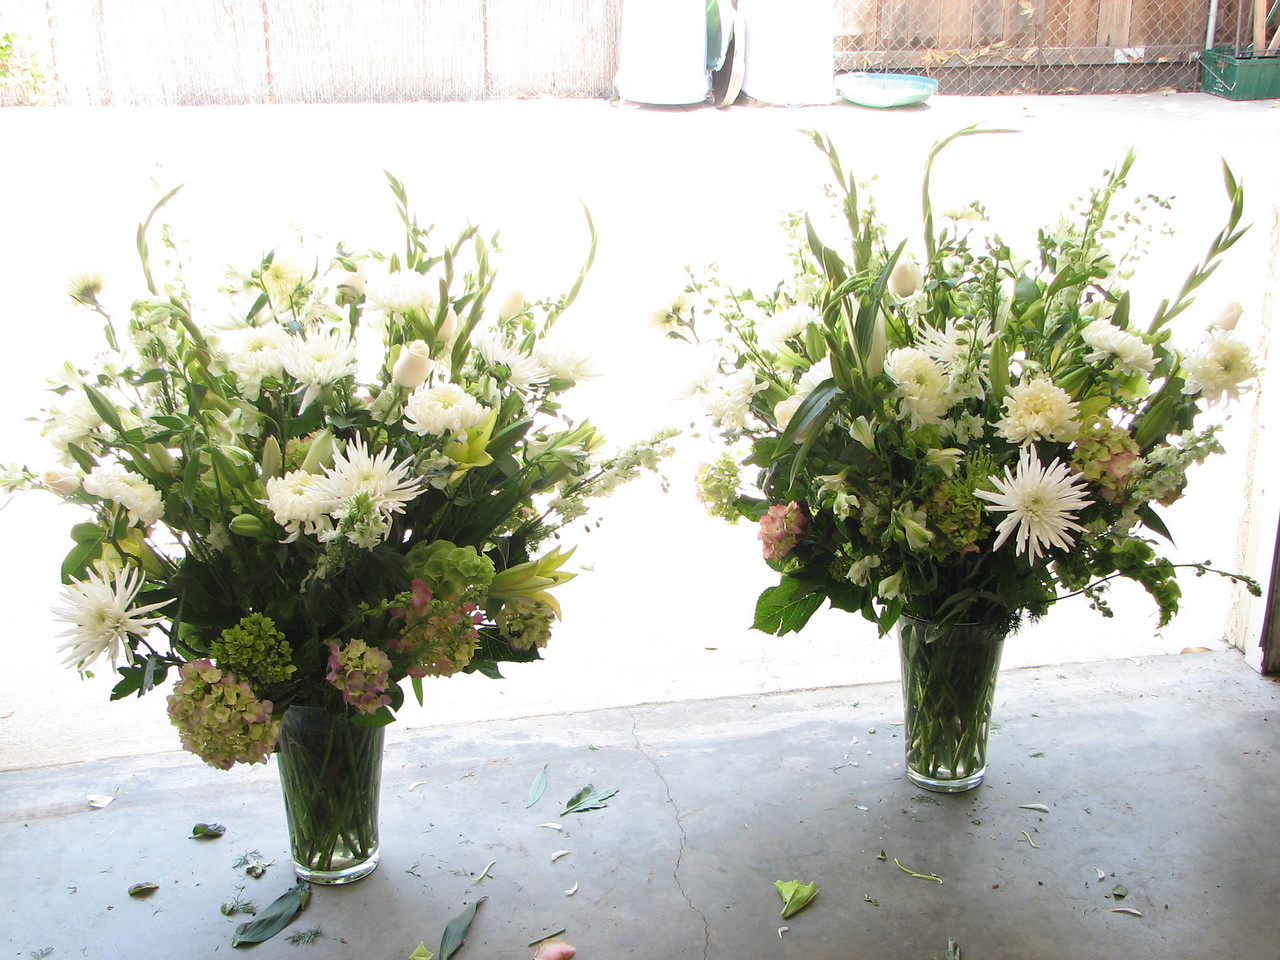 2007 06 09 Sat - Head bouquets - brighter